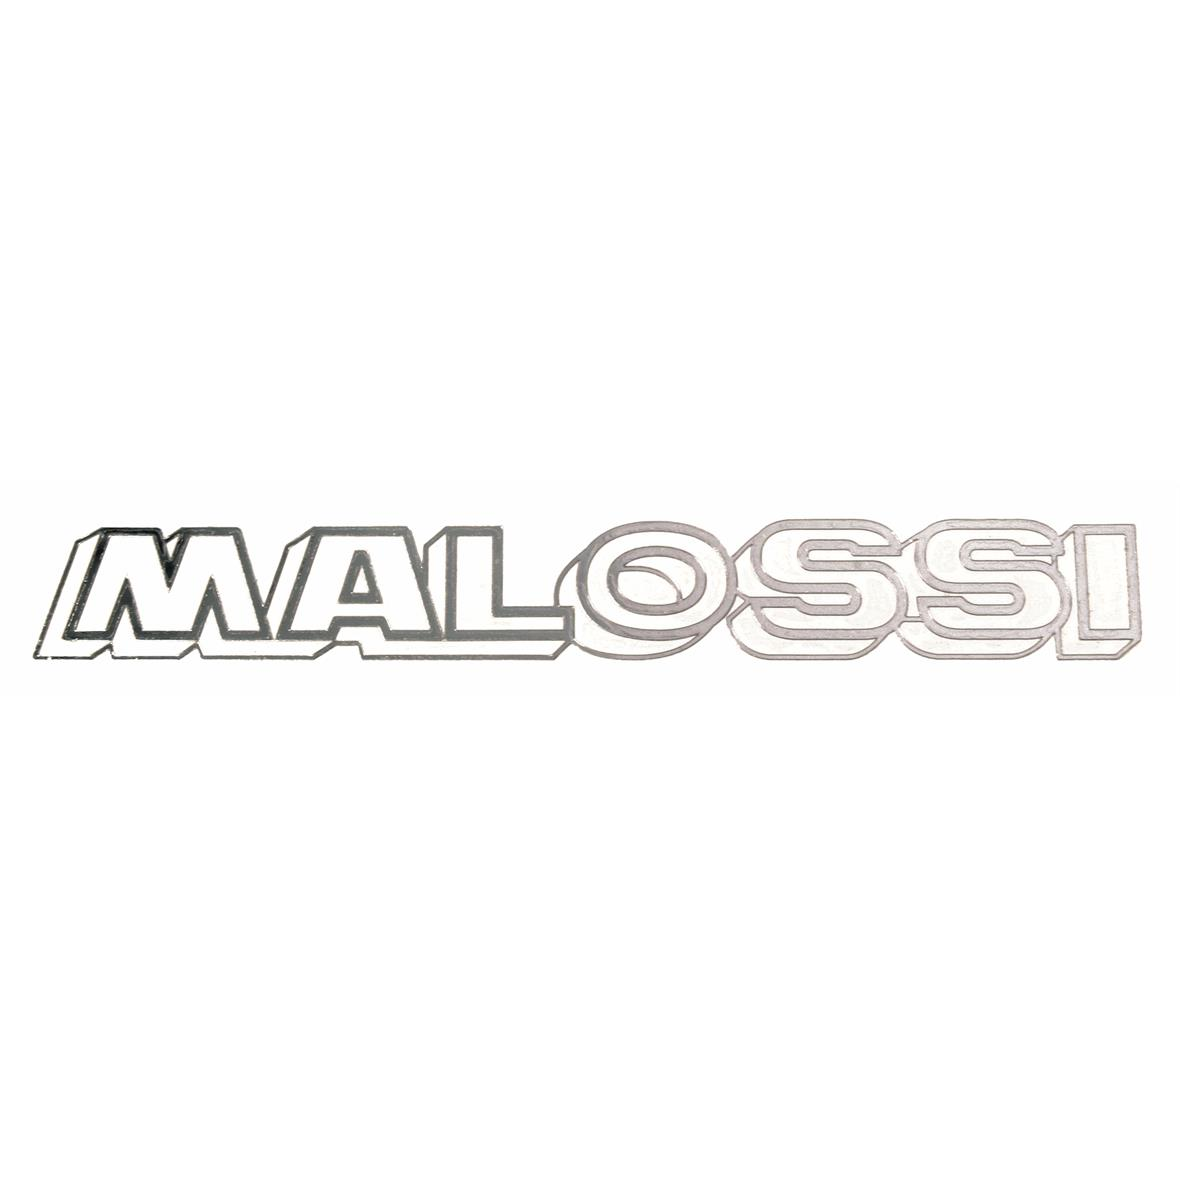 Product Image for 'Sticker MALOSSI logoTitle'